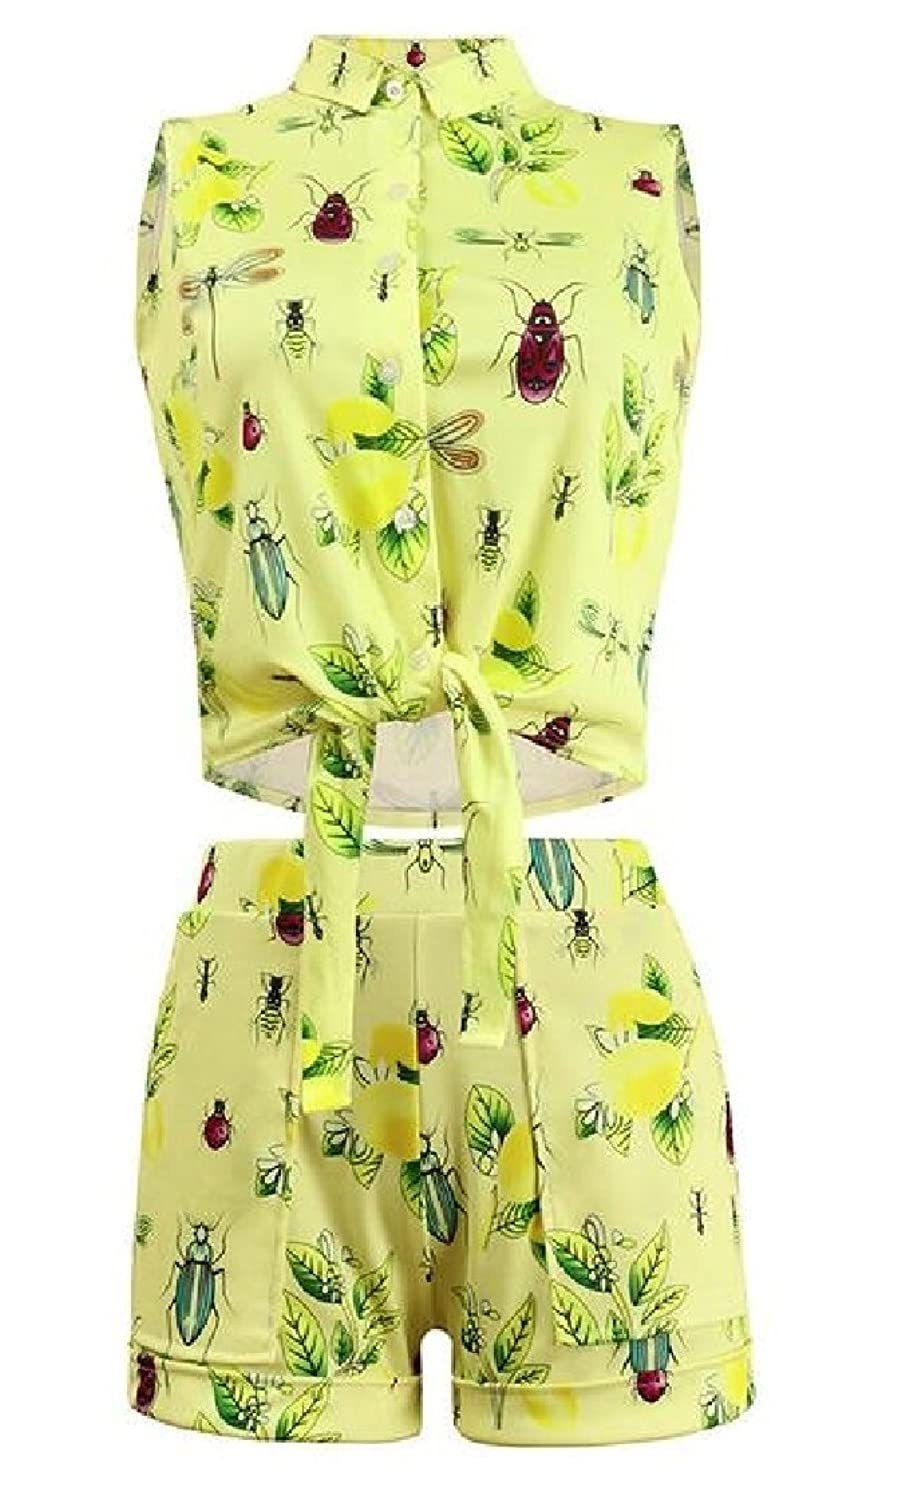 Discount Coolred-Women Top and Shorts Floral 2 Piece Button Down Straps Shorts supplier